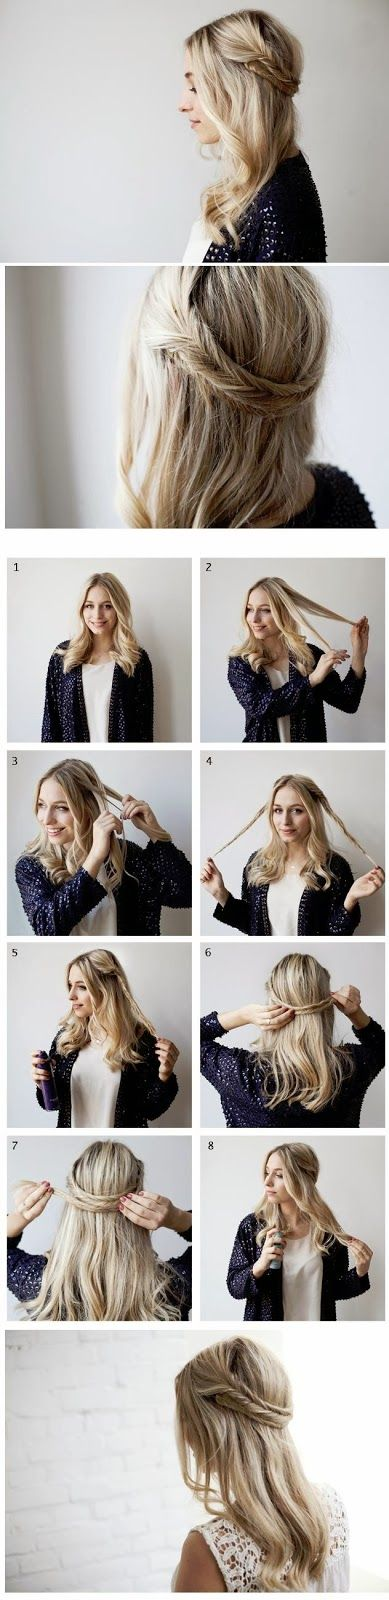 17 Best ideas about Maquillage Nouvel An on Pinterest | Ongles du ...